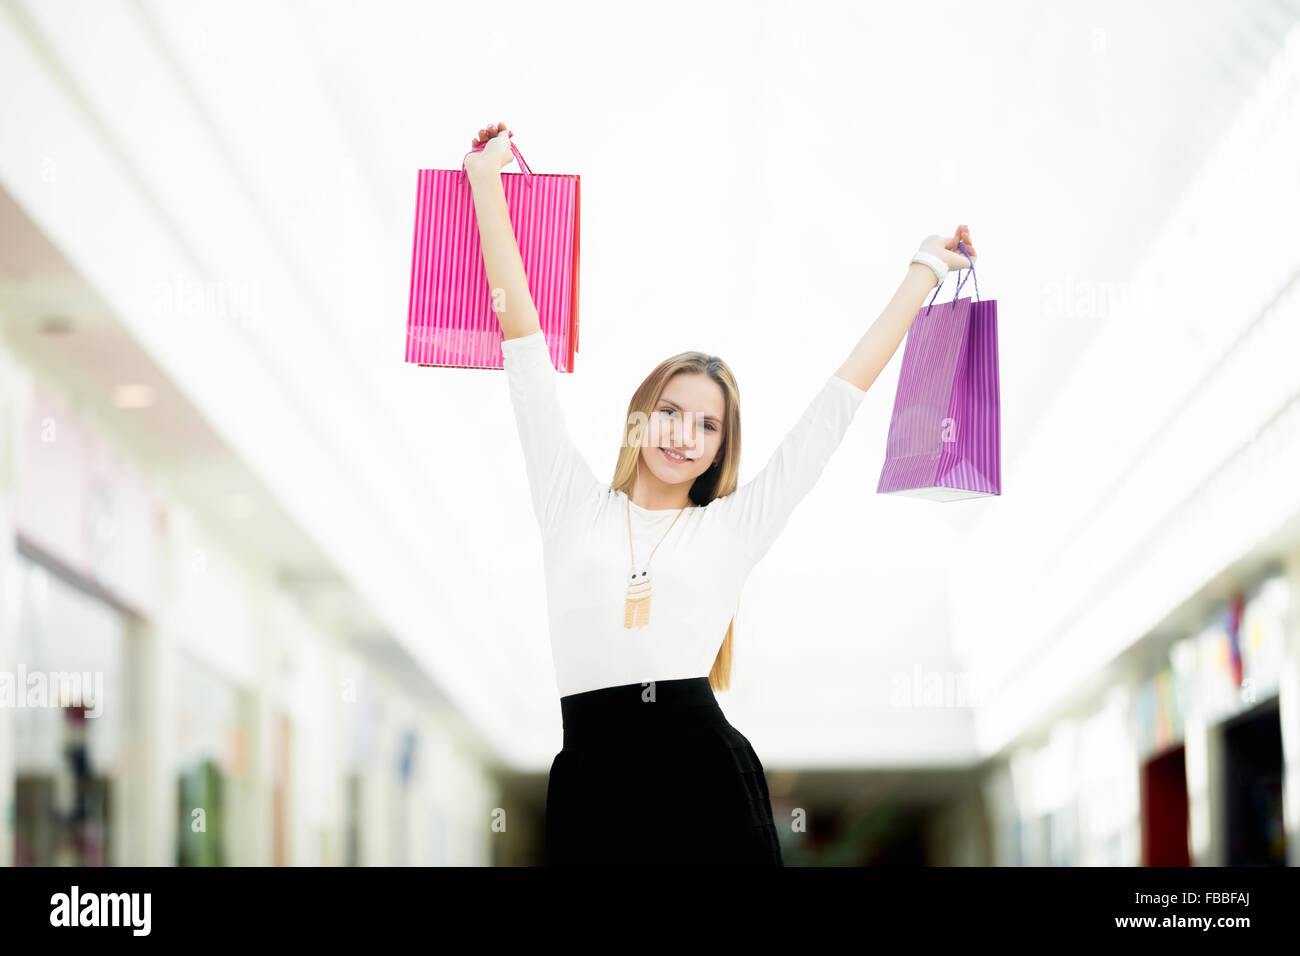 Cheerful young woman happy with her purchases, dancing with shopping bags. Sale, discount, fashion, profitable offer - Stock Image